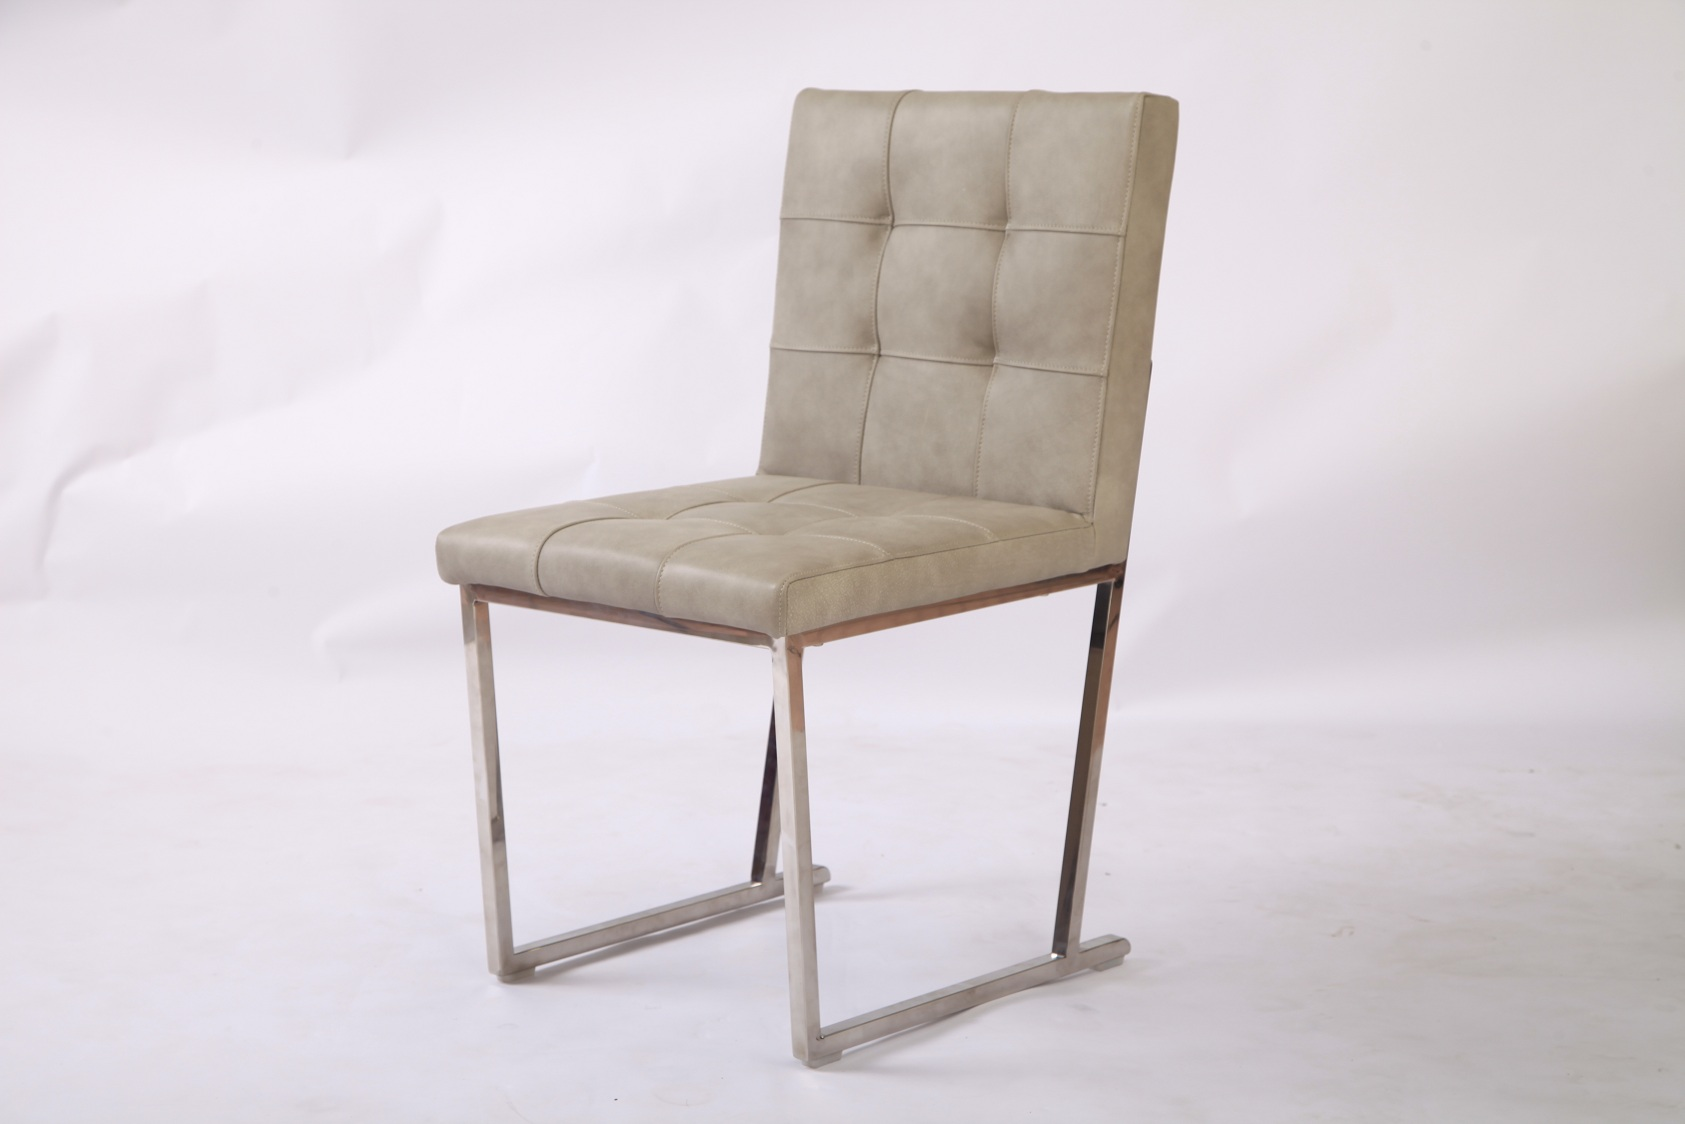 Comfortable Dining Chair for Home